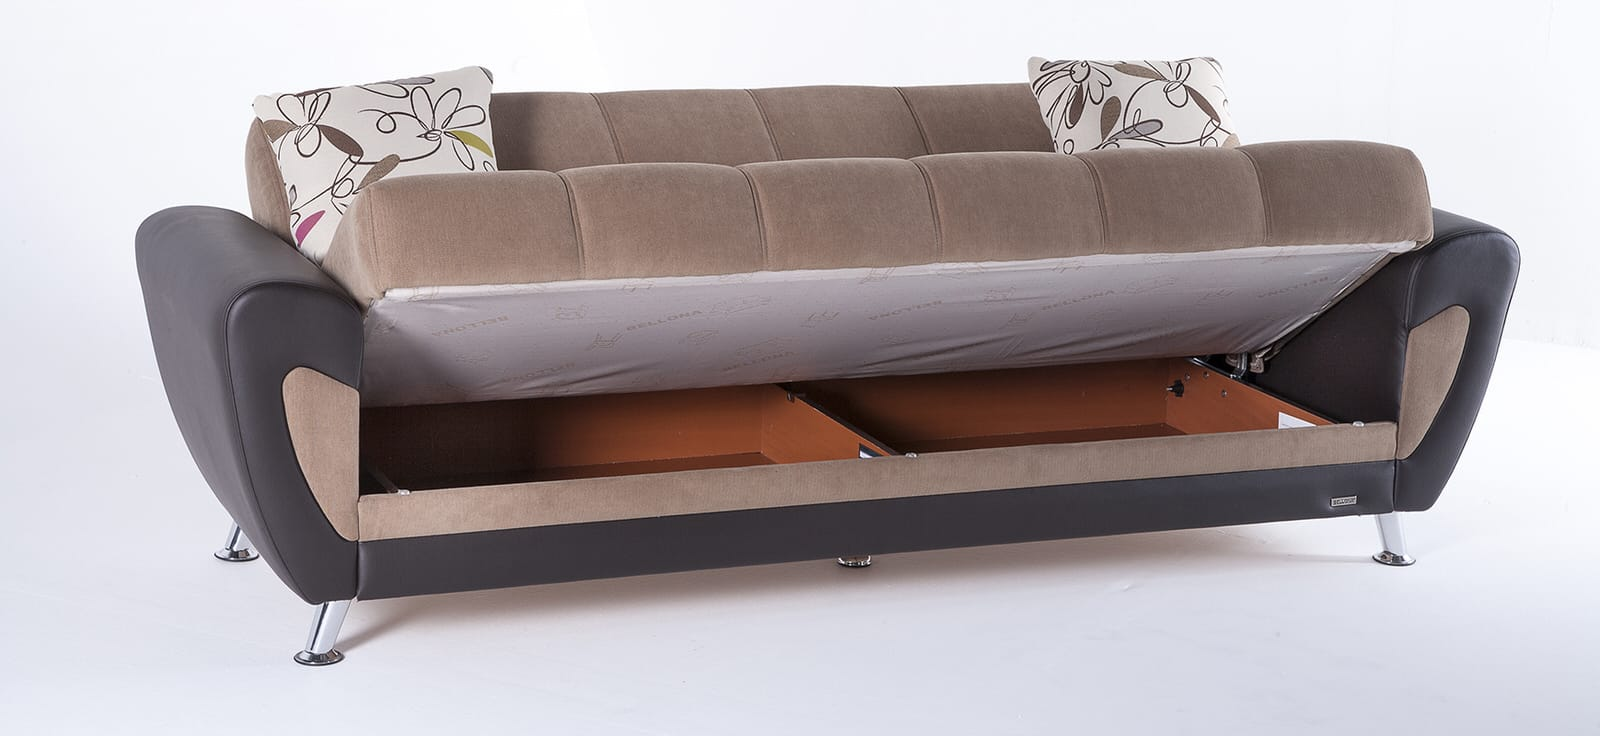 Duru Optimum Brown Convertible Sofa Bed by Sunset